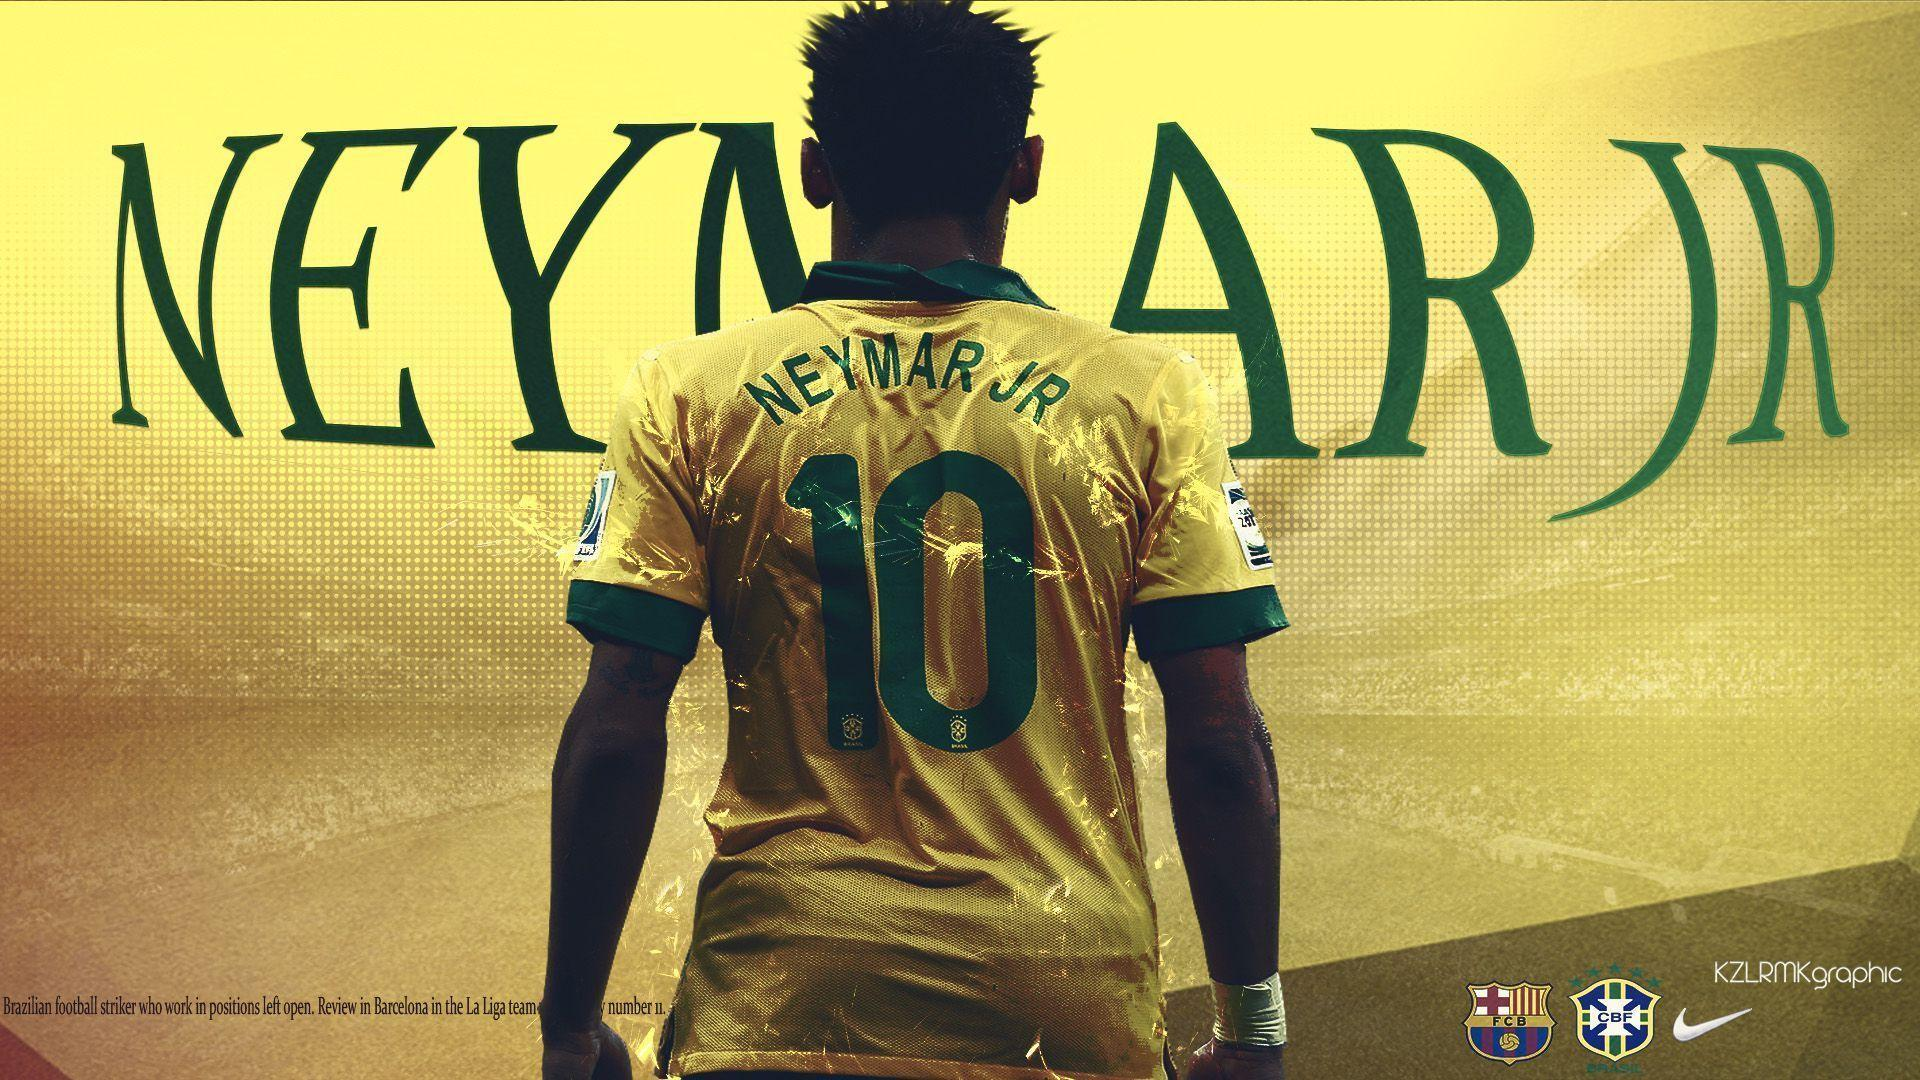 Best HD Neymar Wallpapers 2014 - Desktop Wallpapers - Graffies Blog